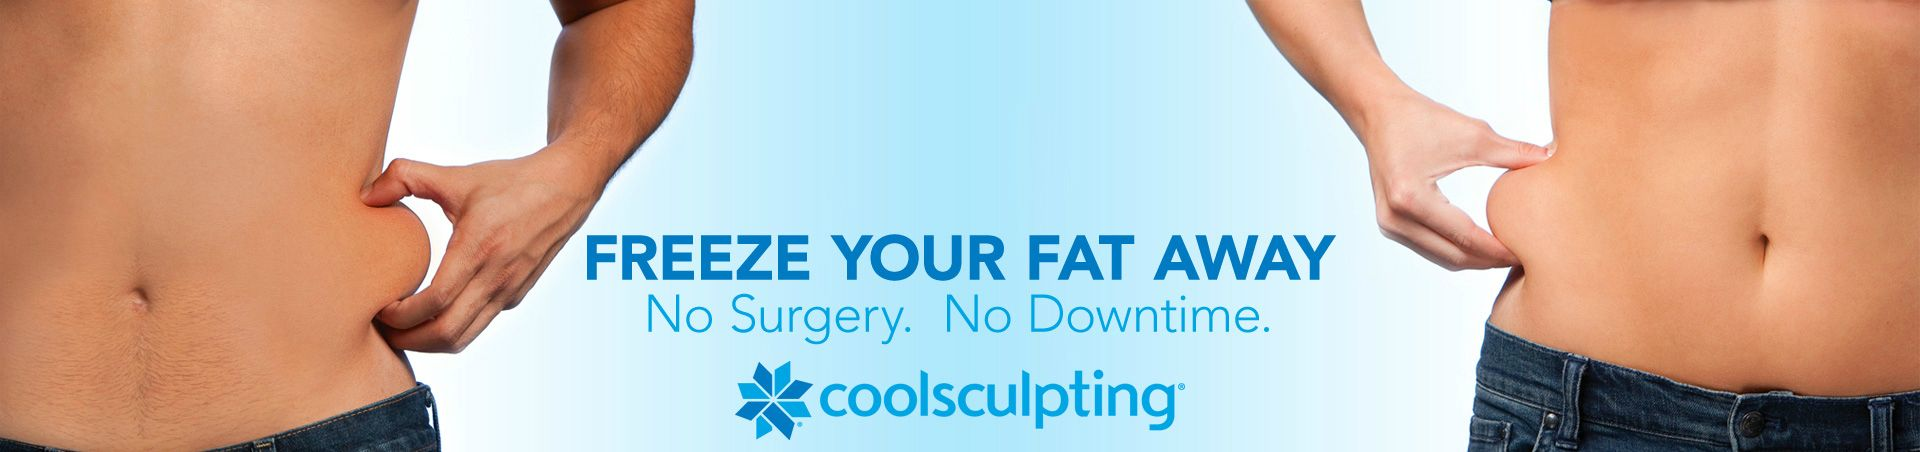 coolsculpting-singapore.jpg